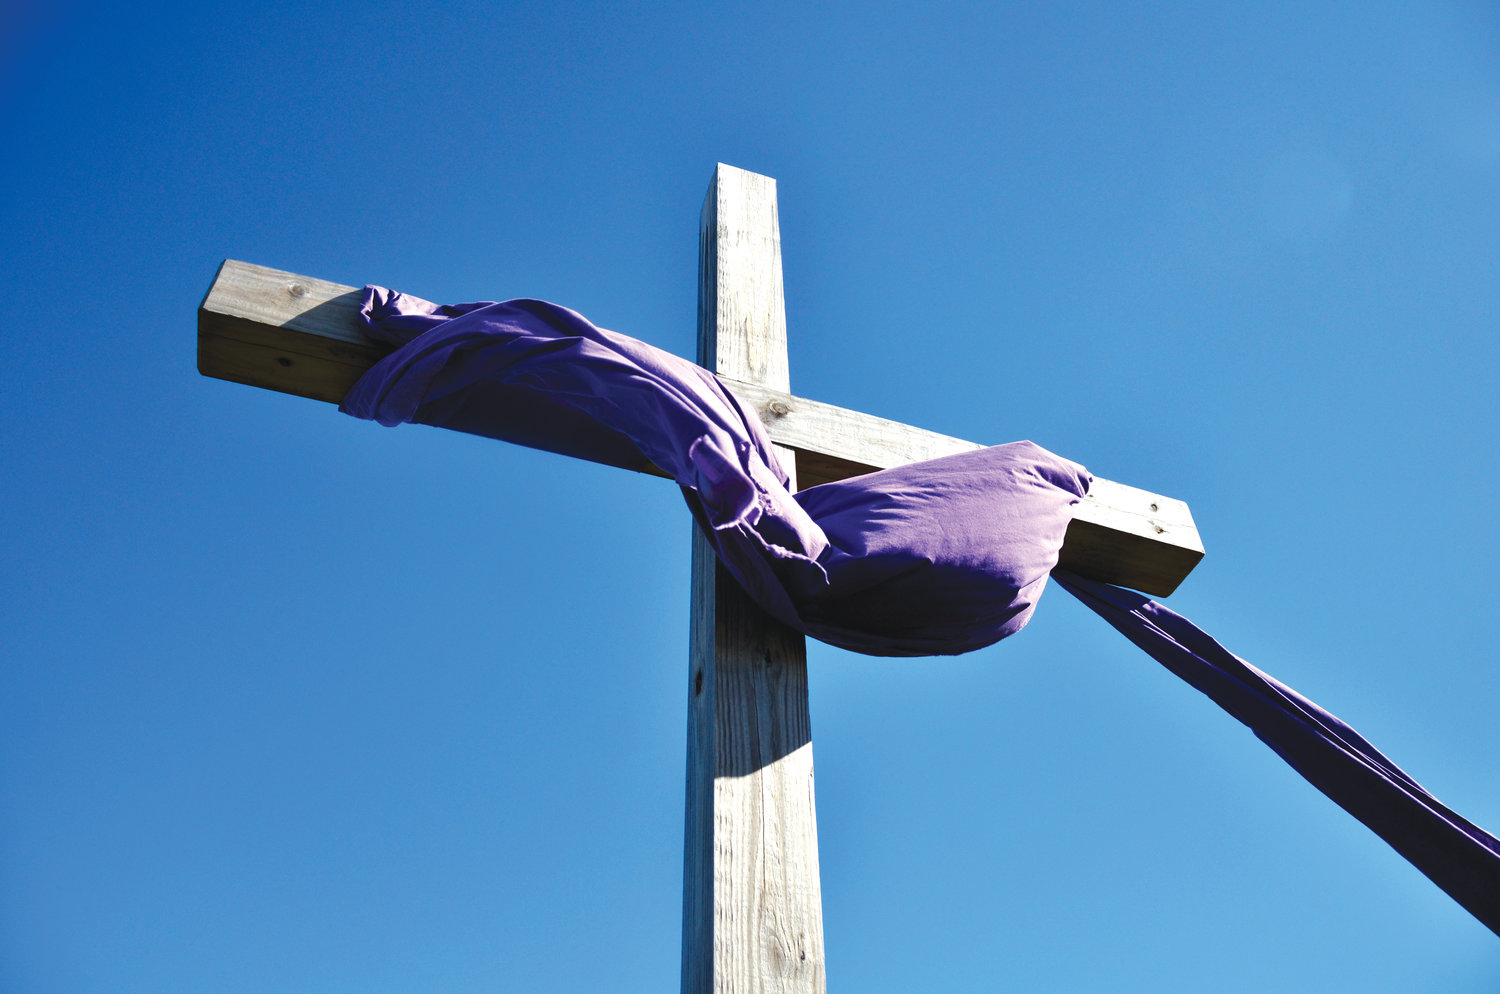 The center cross of the three crosses has a purple cloth attached to show the royalty of Jesus. It represents the day that Jesus rode into Jerusalem on a donkey as a King.